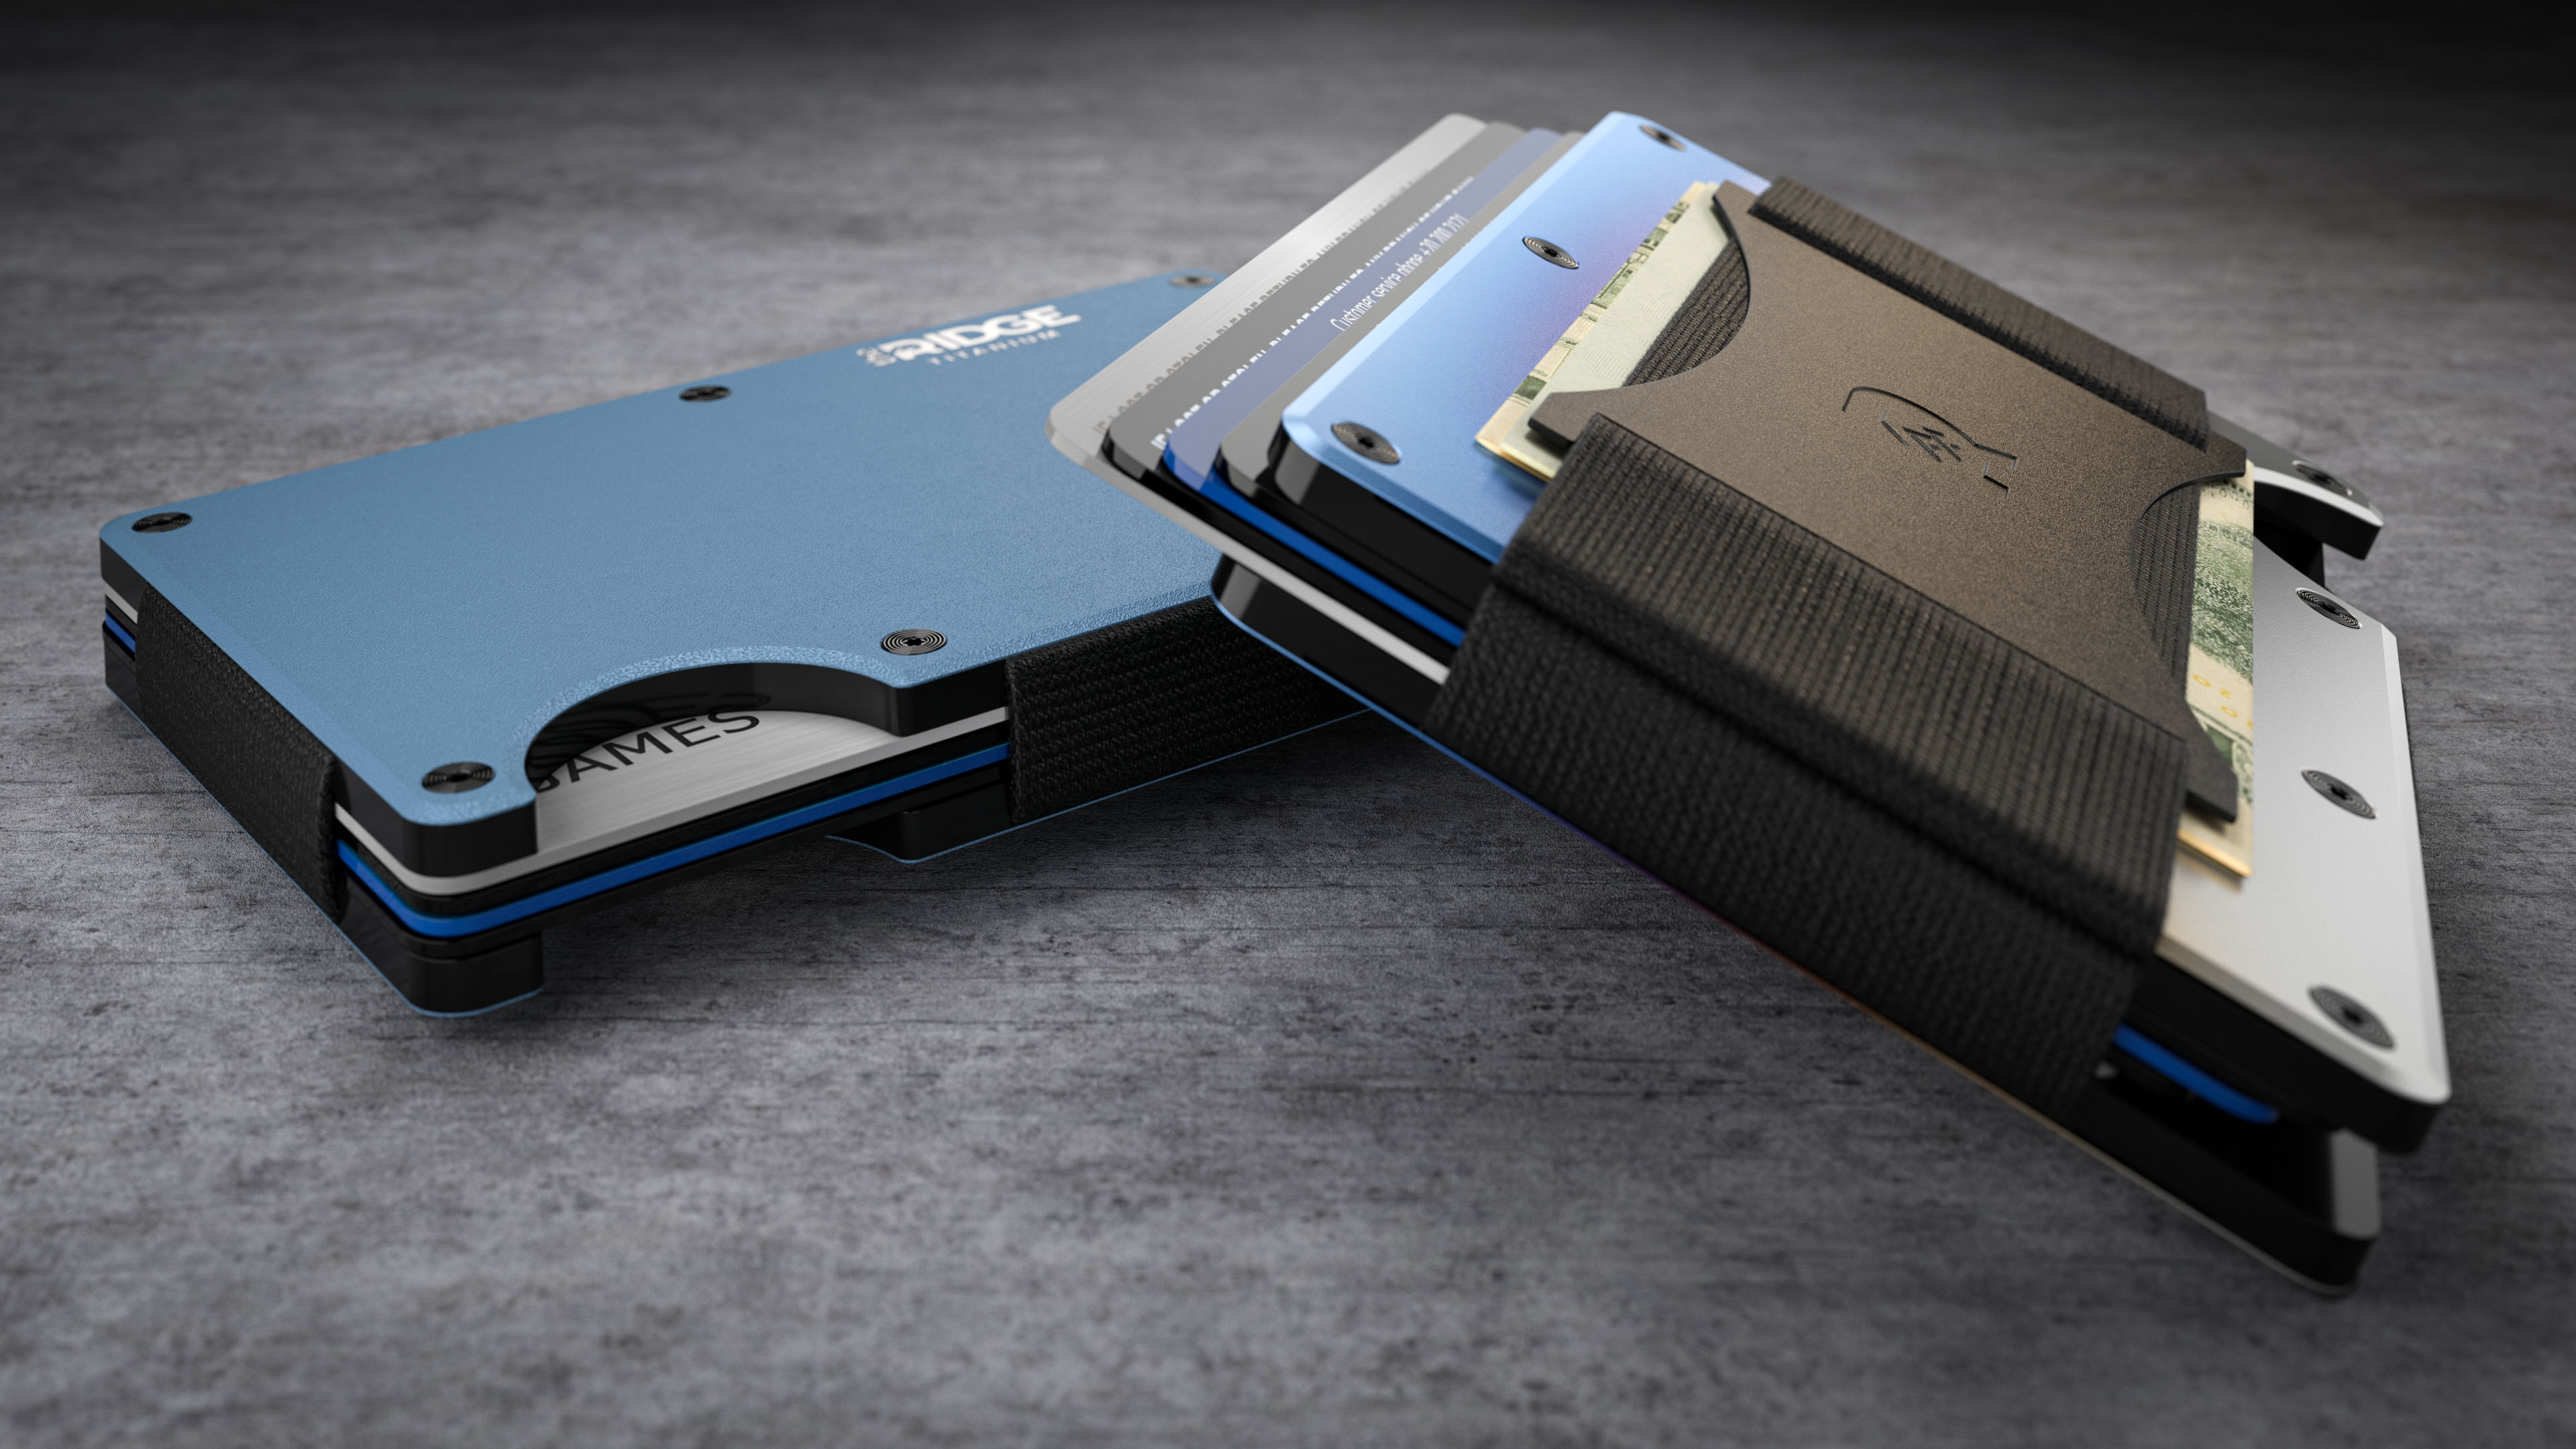 Wallet money clip product rendering sitting on wooden surrace